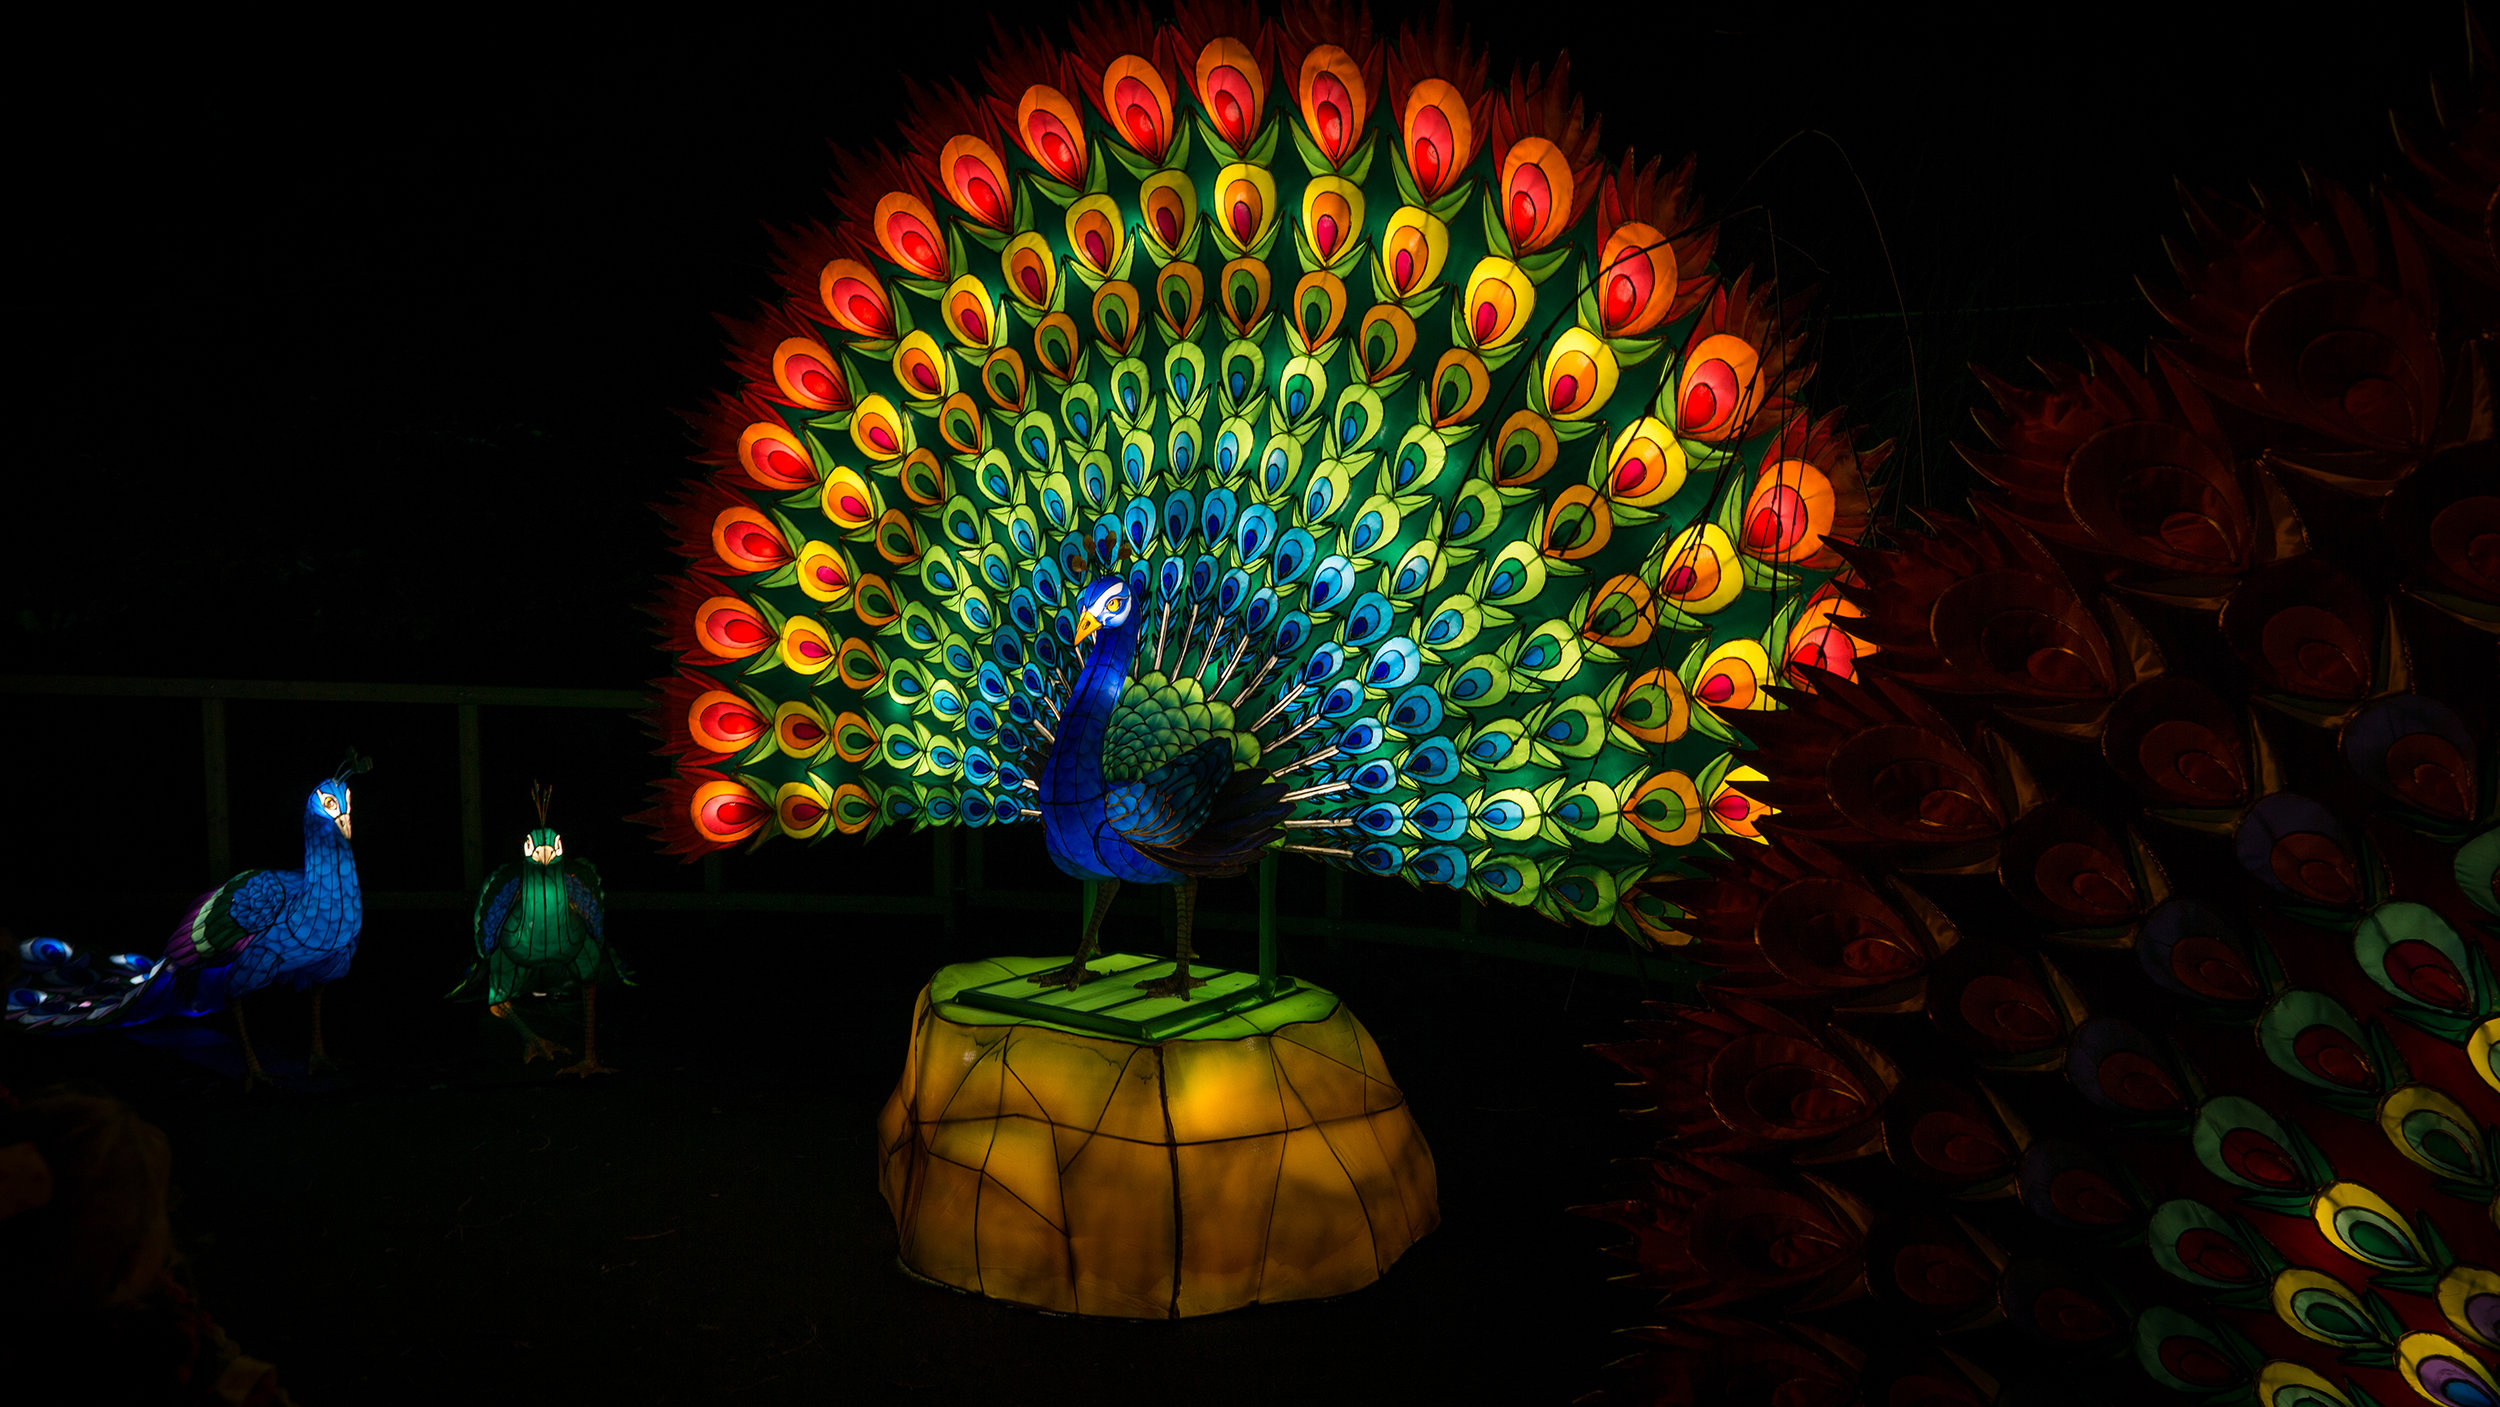 Peacock light sculptures